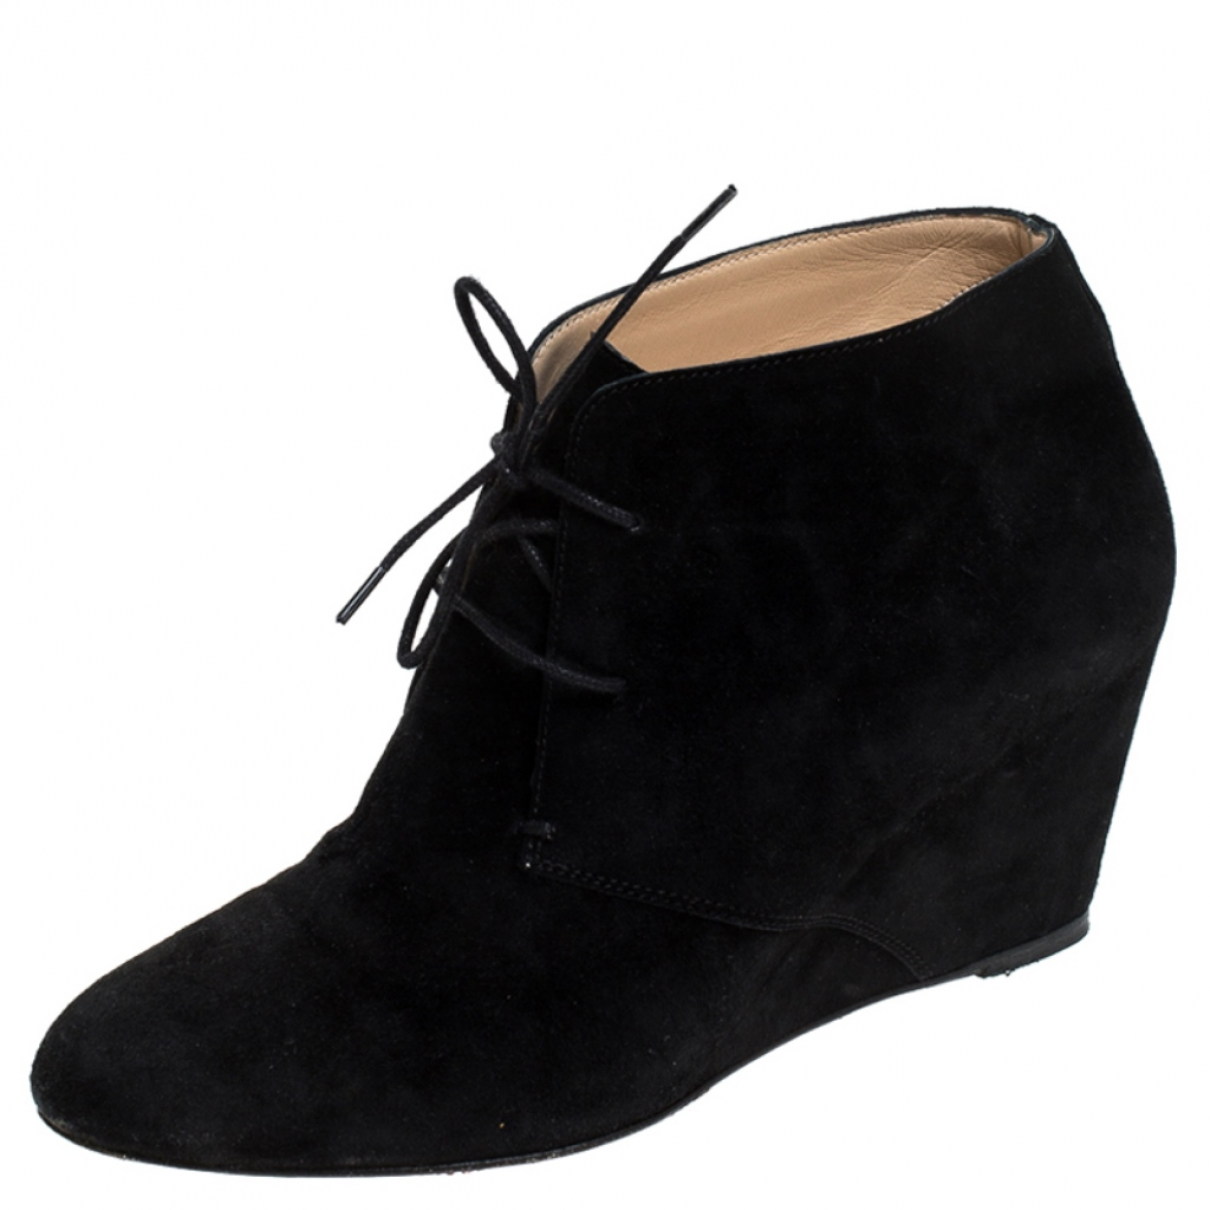 Christian Louboutin N Black Suede Ankle boots for Women 7 US